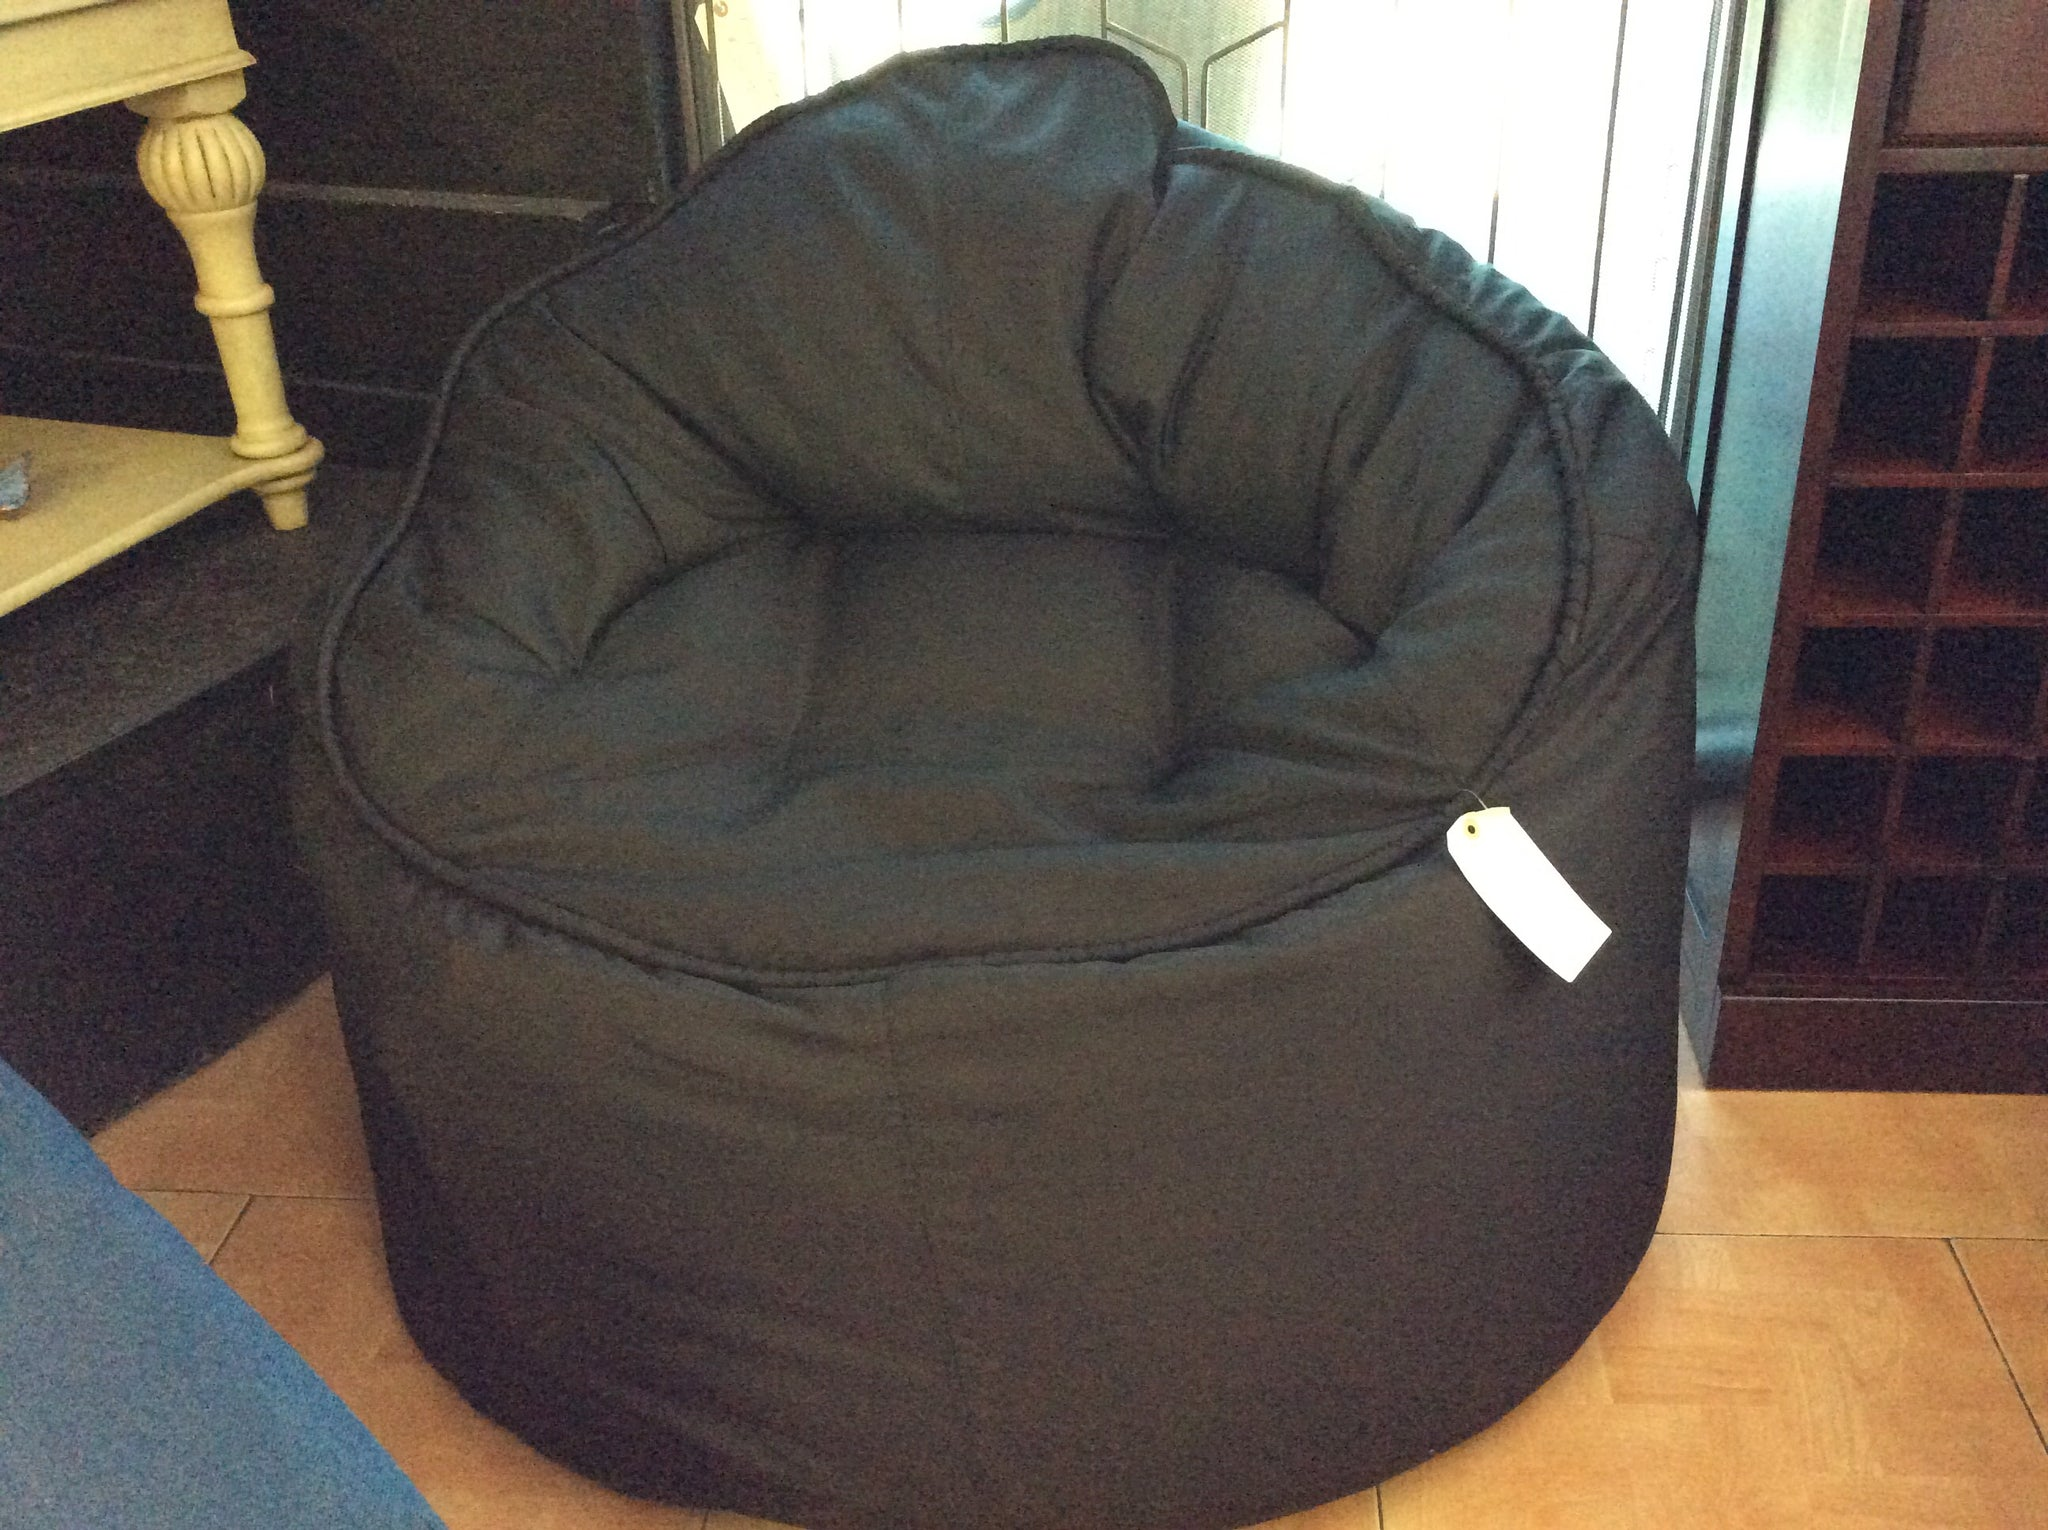 p vinyl max product mzcb beanbag home chair en image black hardware